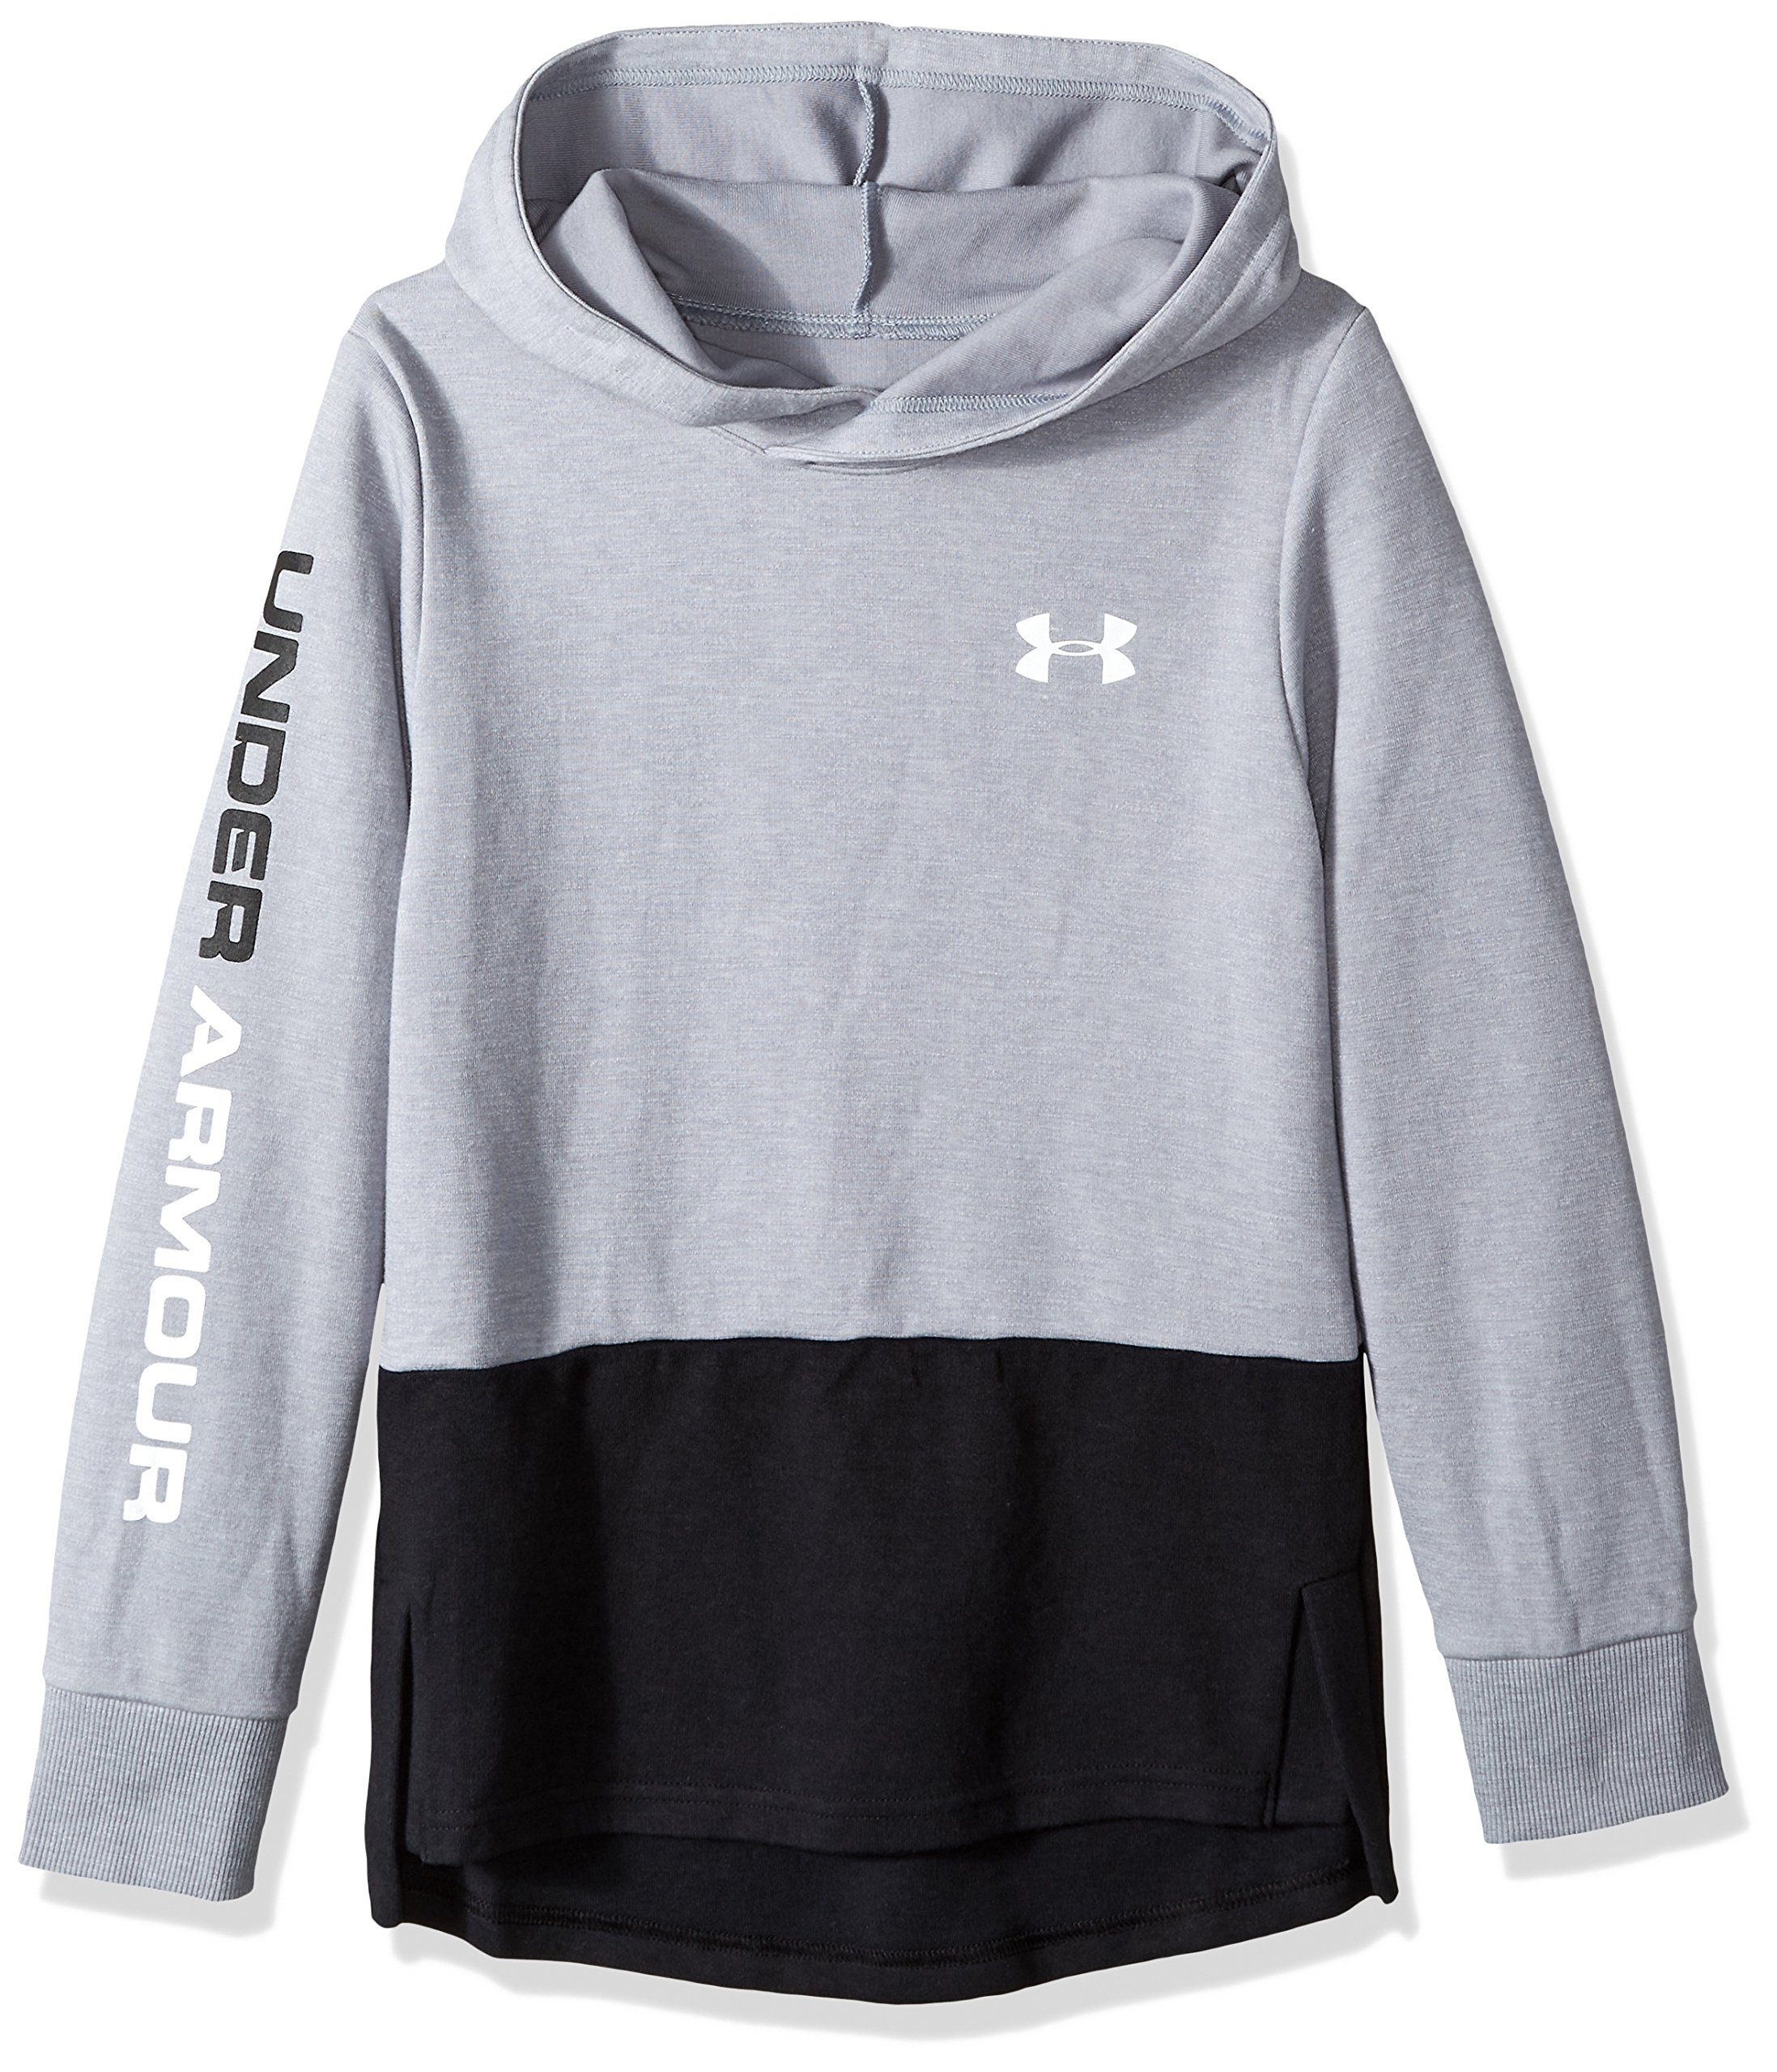 Under Armour Boys Double Knit Hoodie, Steel Light Heather (035)/White, Youth X-Large by Under Armour